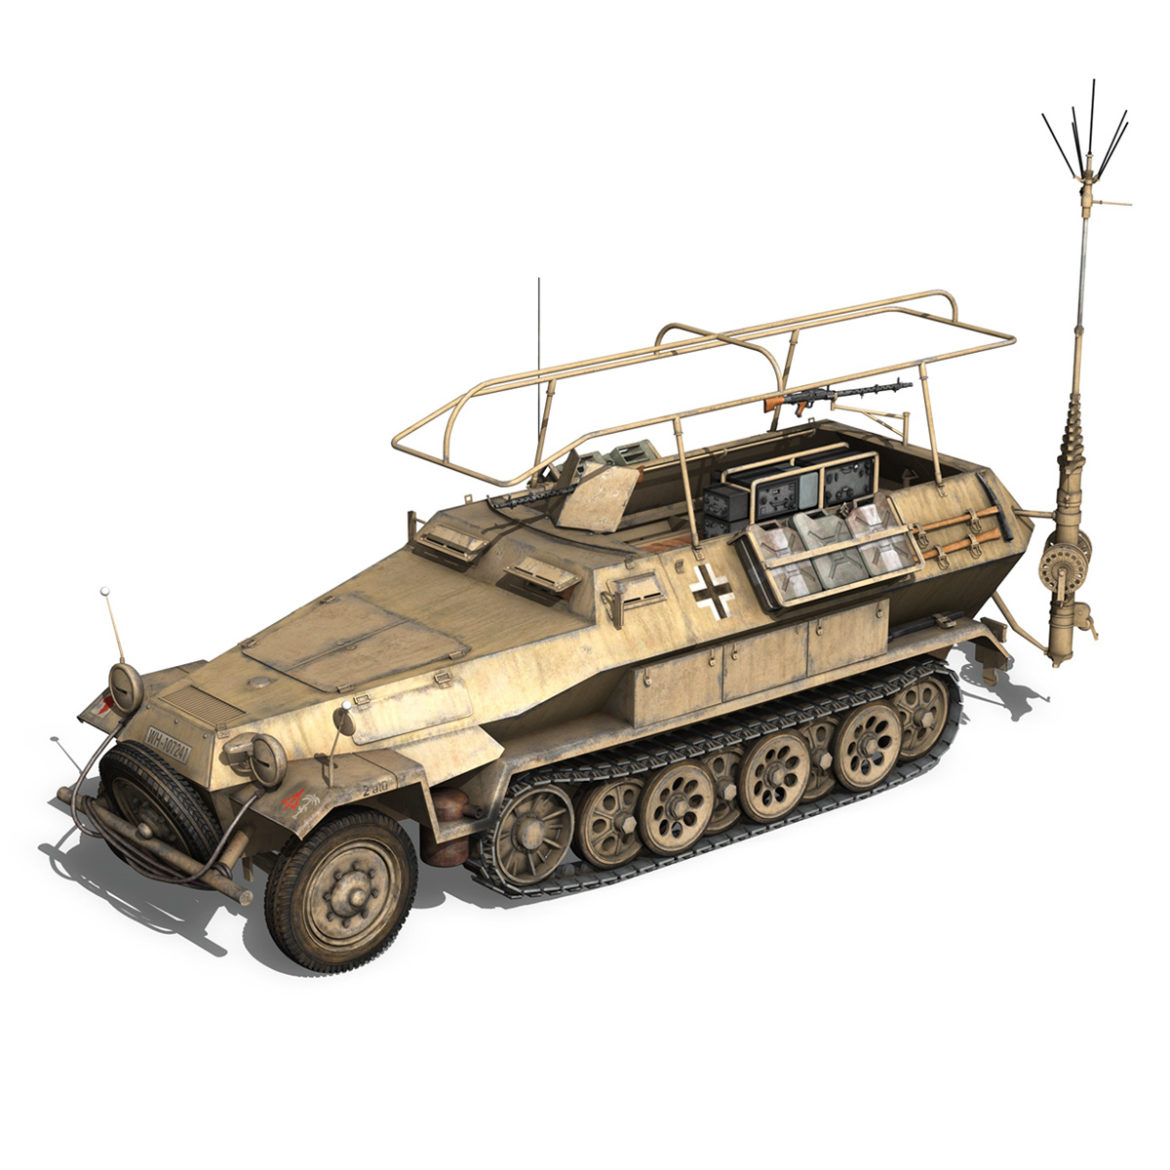 sdkfz 251 ausf.b – communications vehicle – 15pd 3d model 3ds fbx lwo lw lws obj c4d 305987